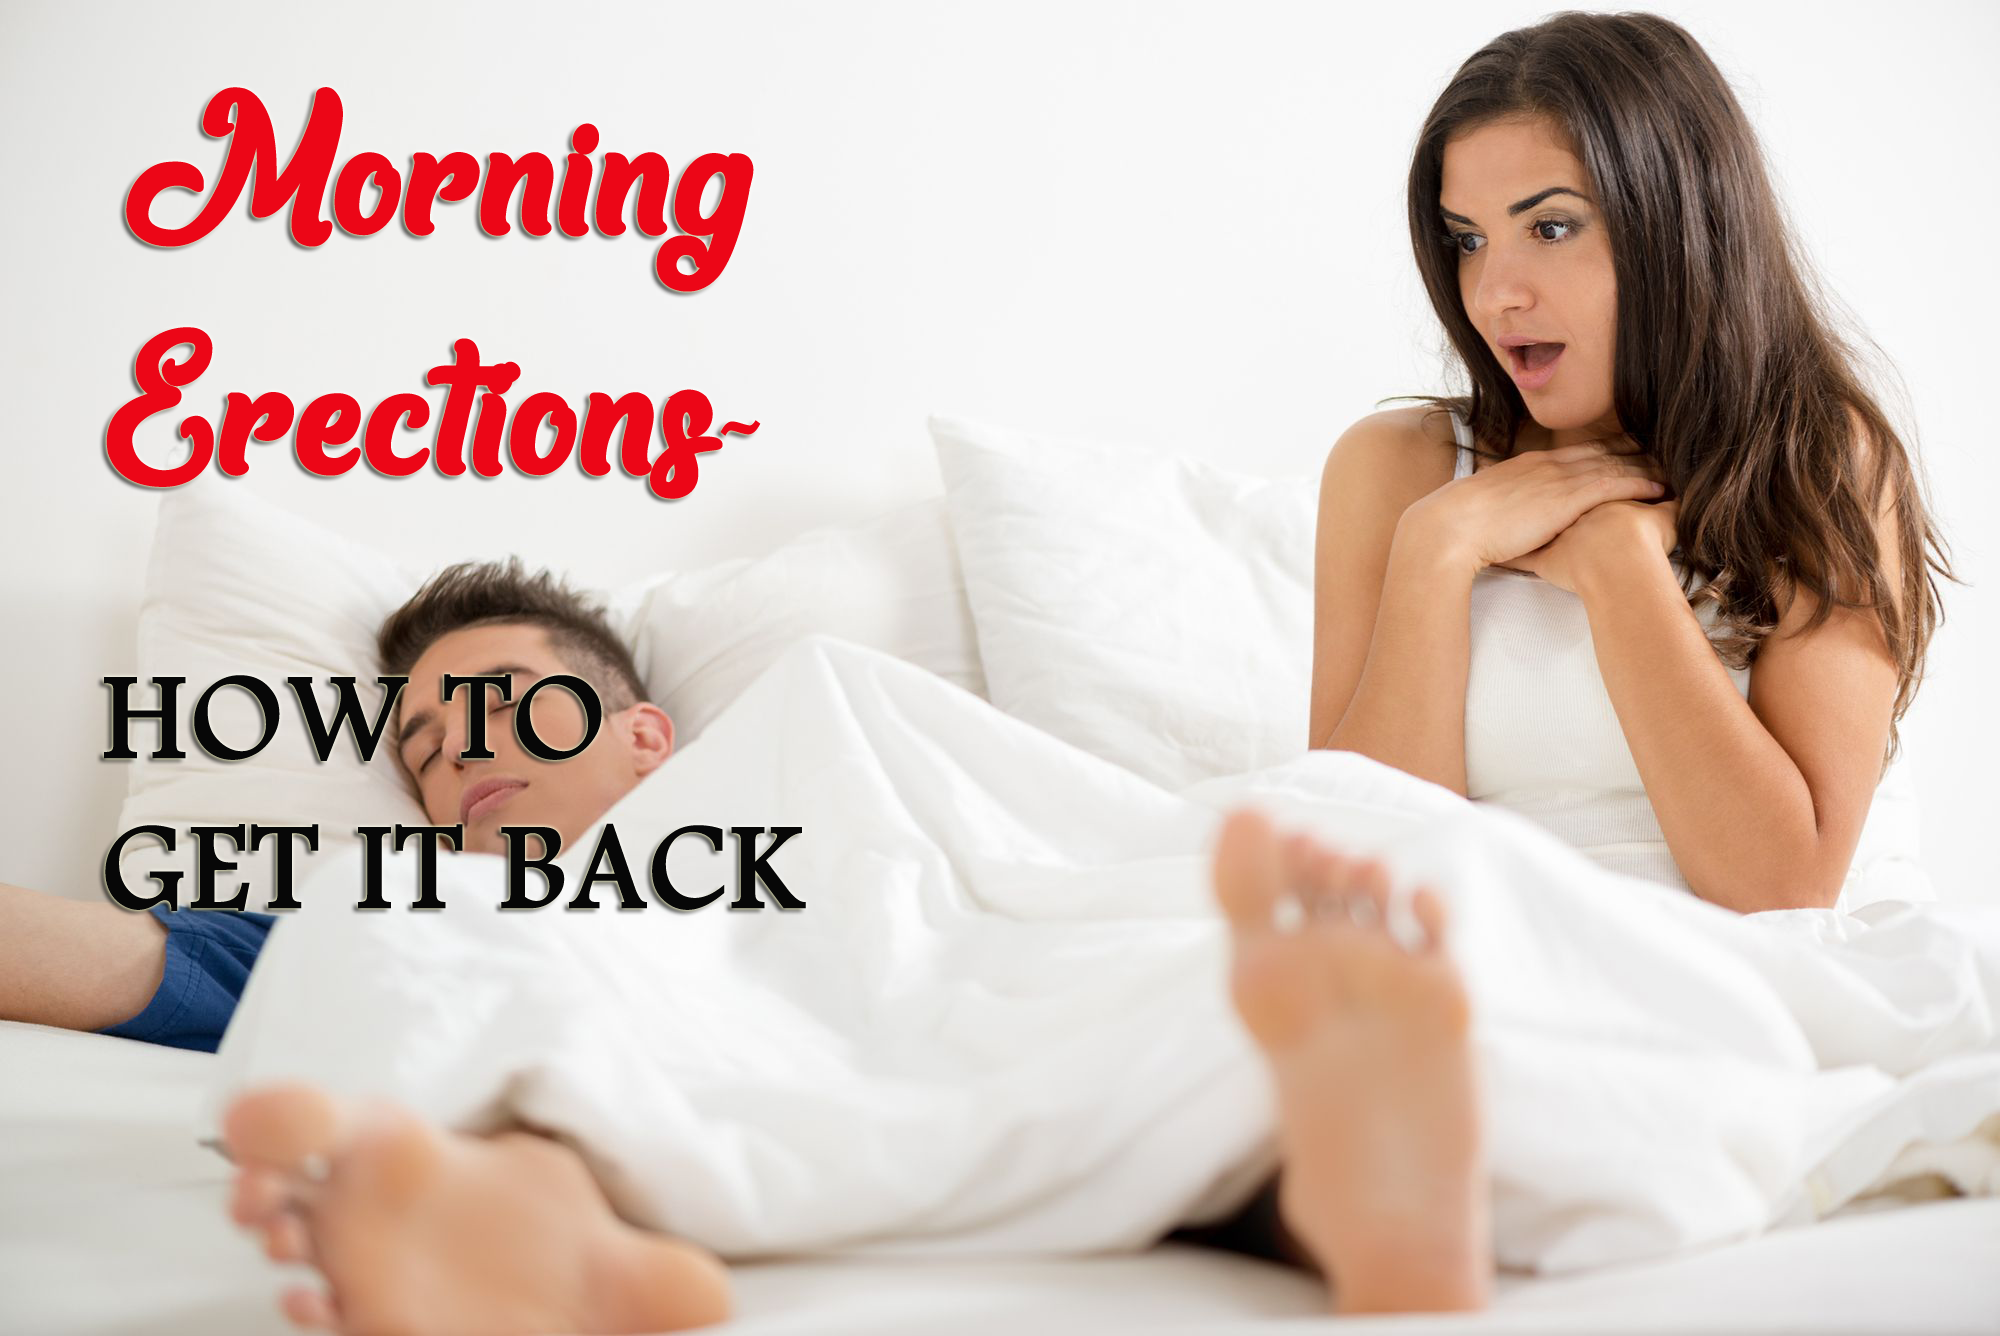 Everything You Need to Know About Morning Erections (Morning Wood)